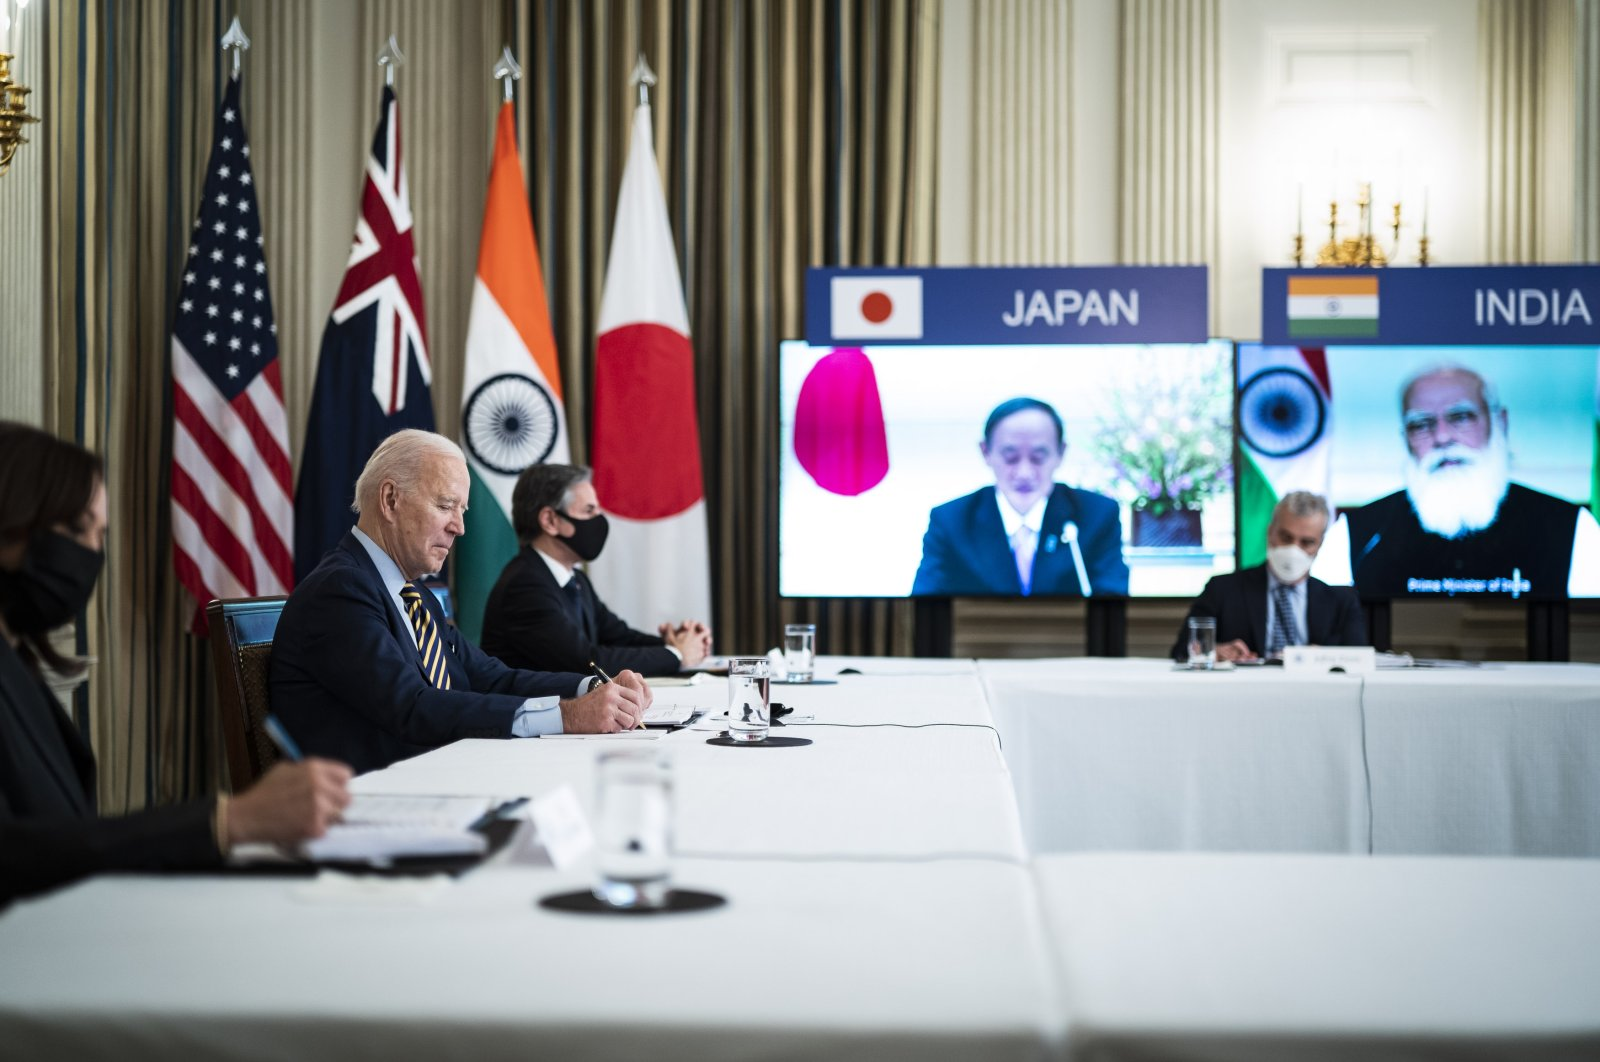 U.S. President Joe Biden and his delegation attend the virtual summit of the Quadrilateral Security Dialogue (Quad) with Japanese Prime Minister Yoshihide Suga, Indian Prime Minister Narendra Modi and Australian Prime Minister Scott Morrison,at the White House, Washington, D.C., U.S.,March 12, 2021.(Photo by Getty Images)